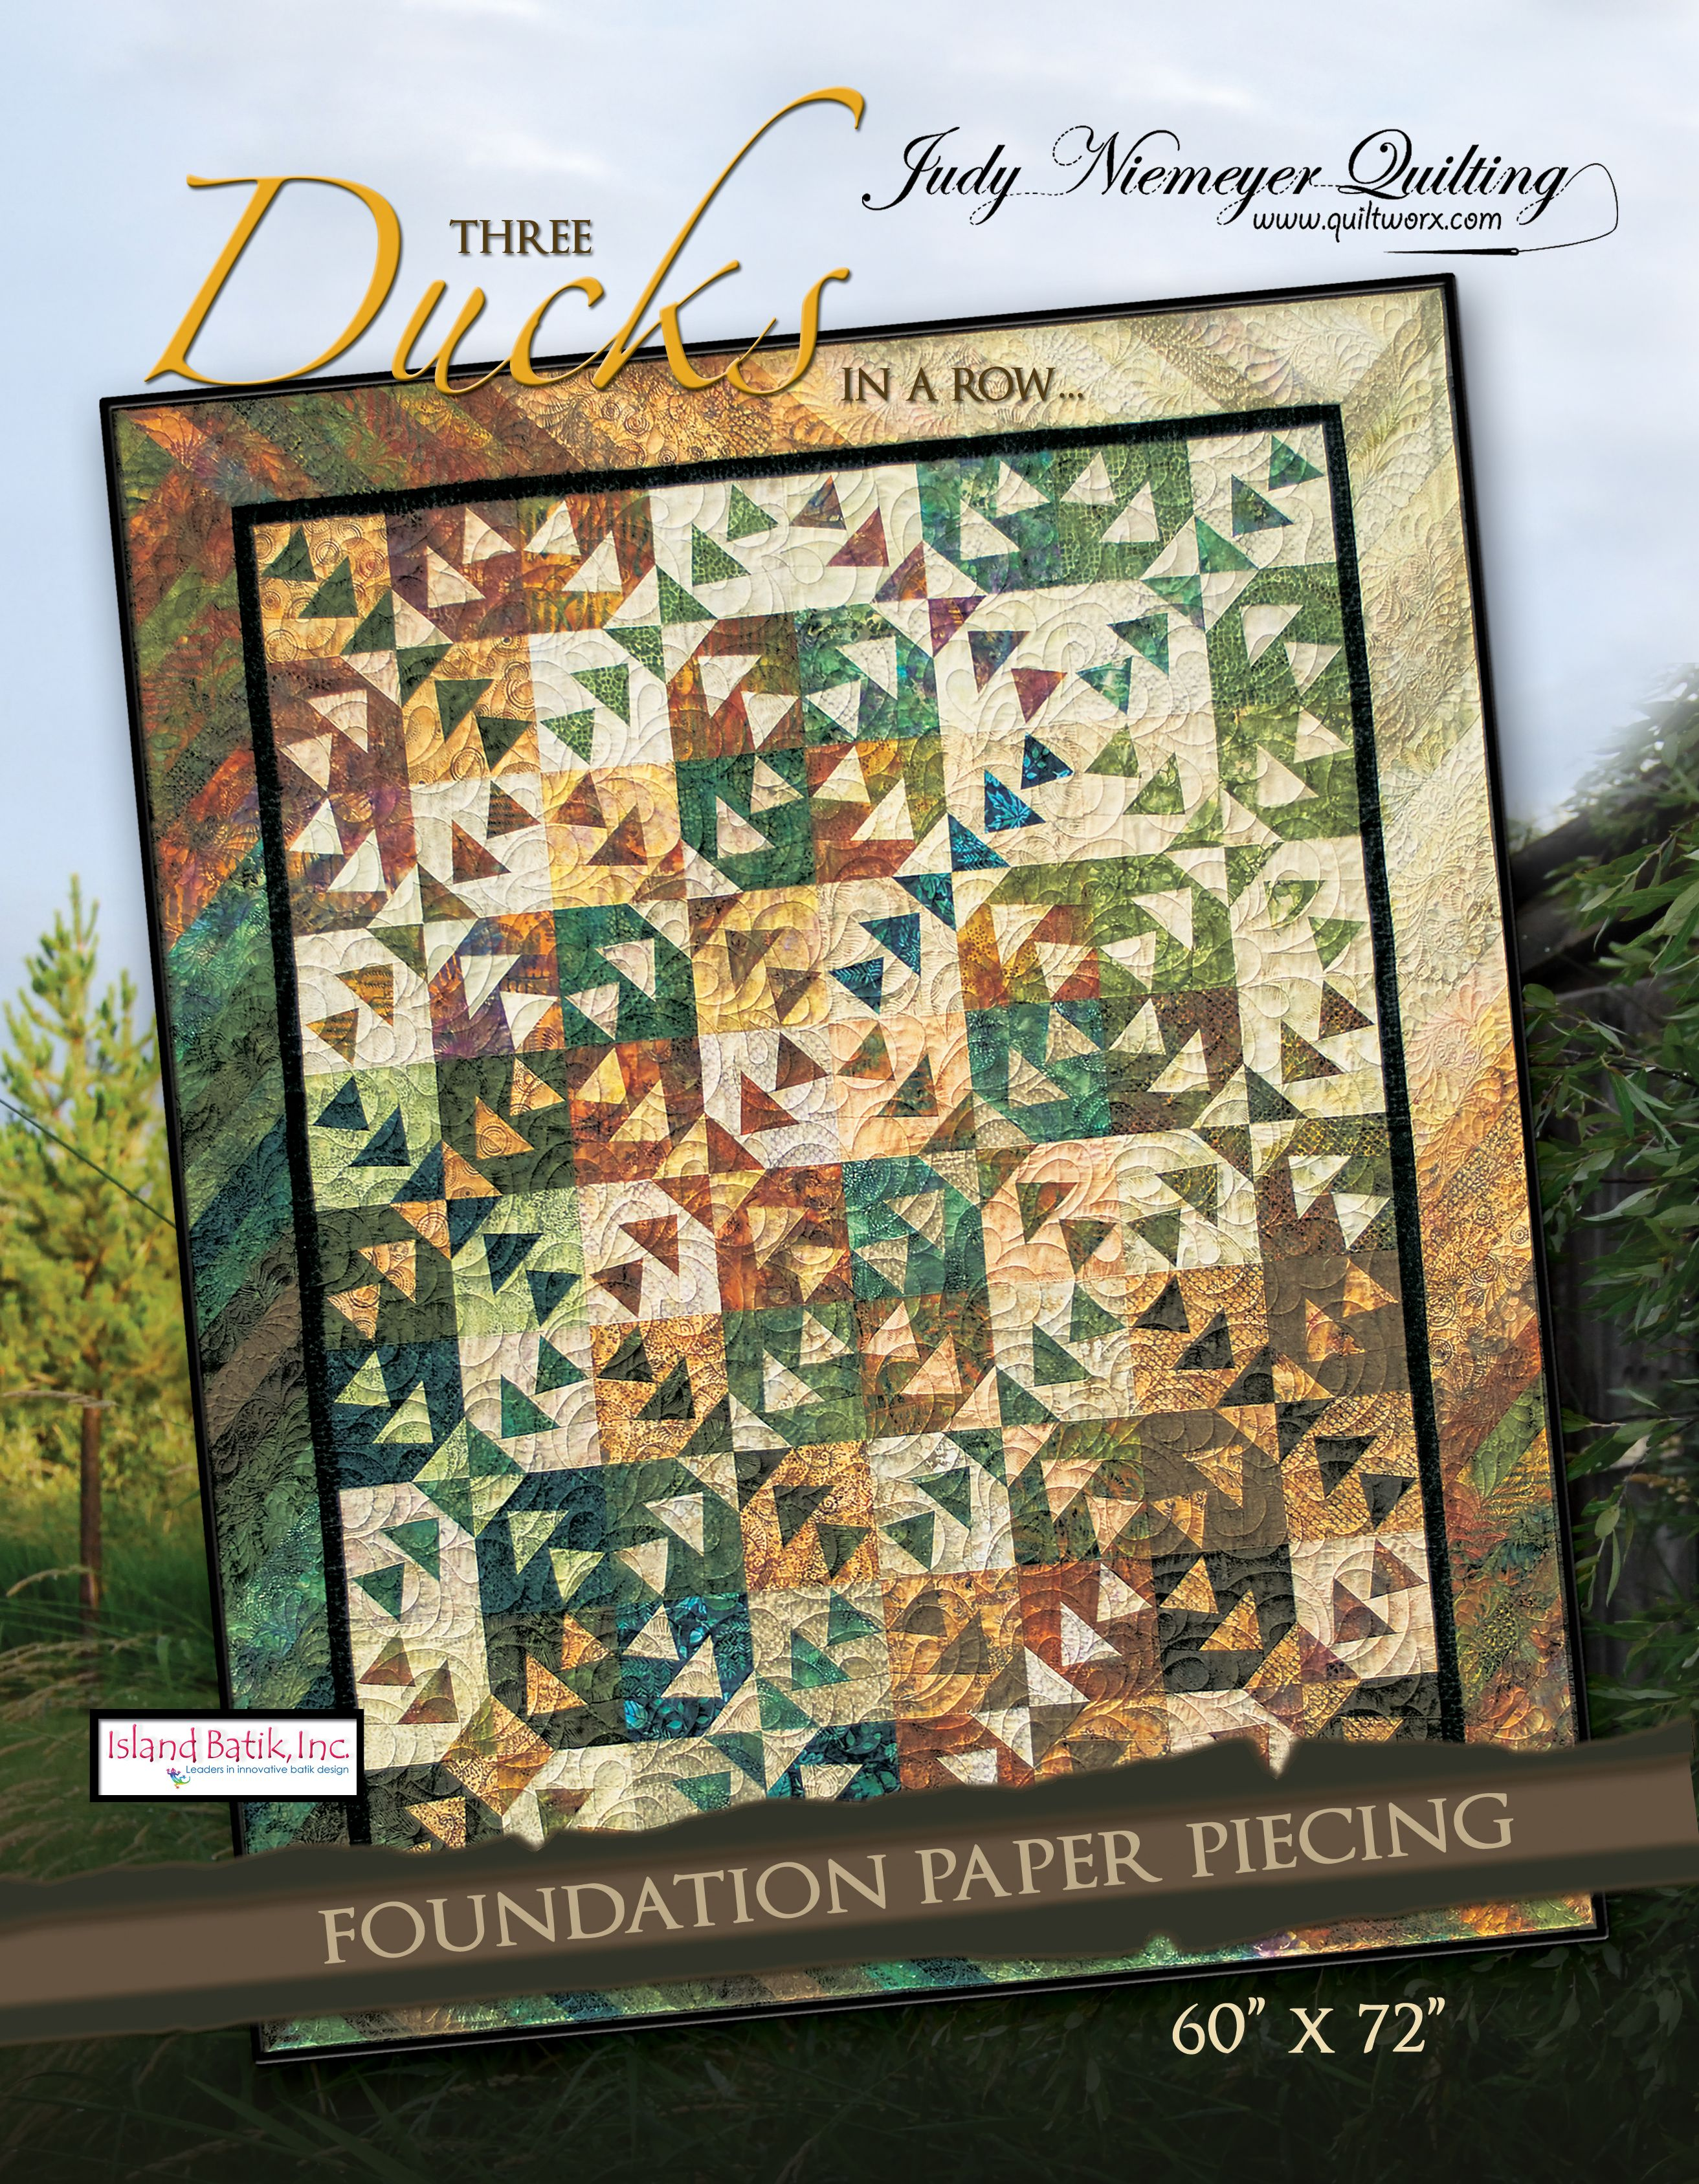 Quiltworx Com A Judy Niemeyer Company Foundation Paper Piecing Paper Piecing Quilts Flying Geese Quilt